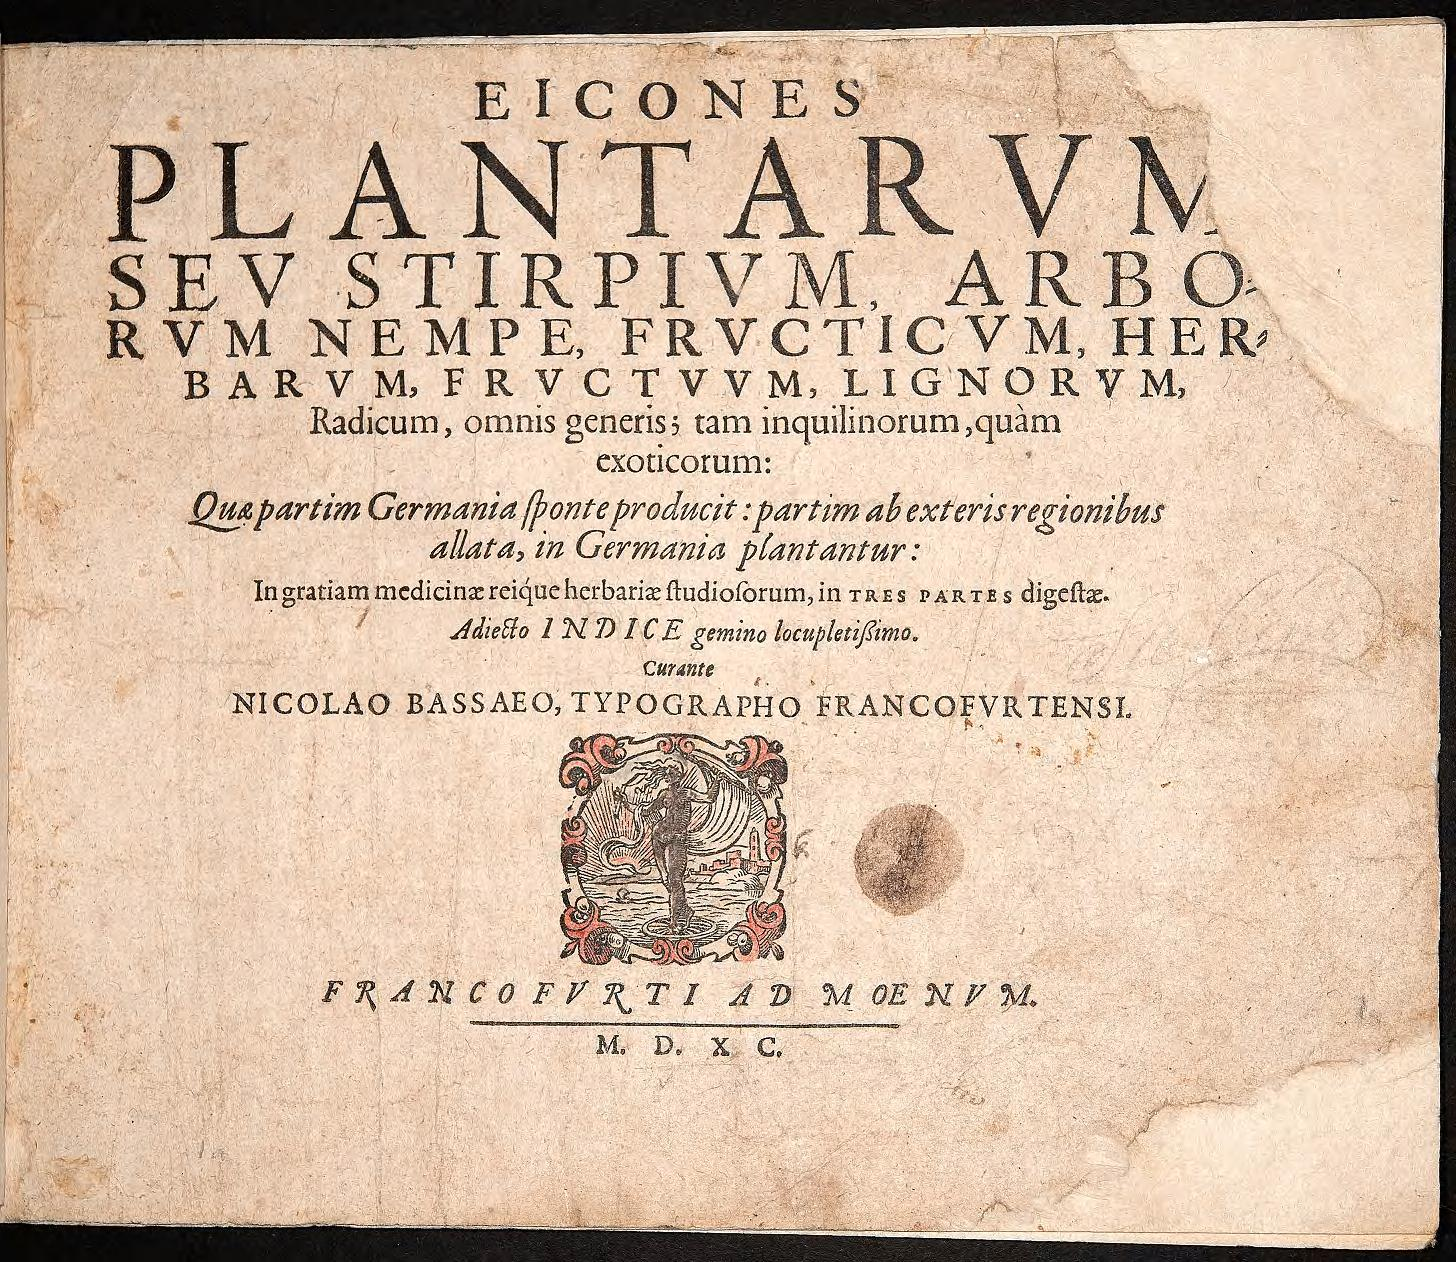 4.Eicones title page.jpg